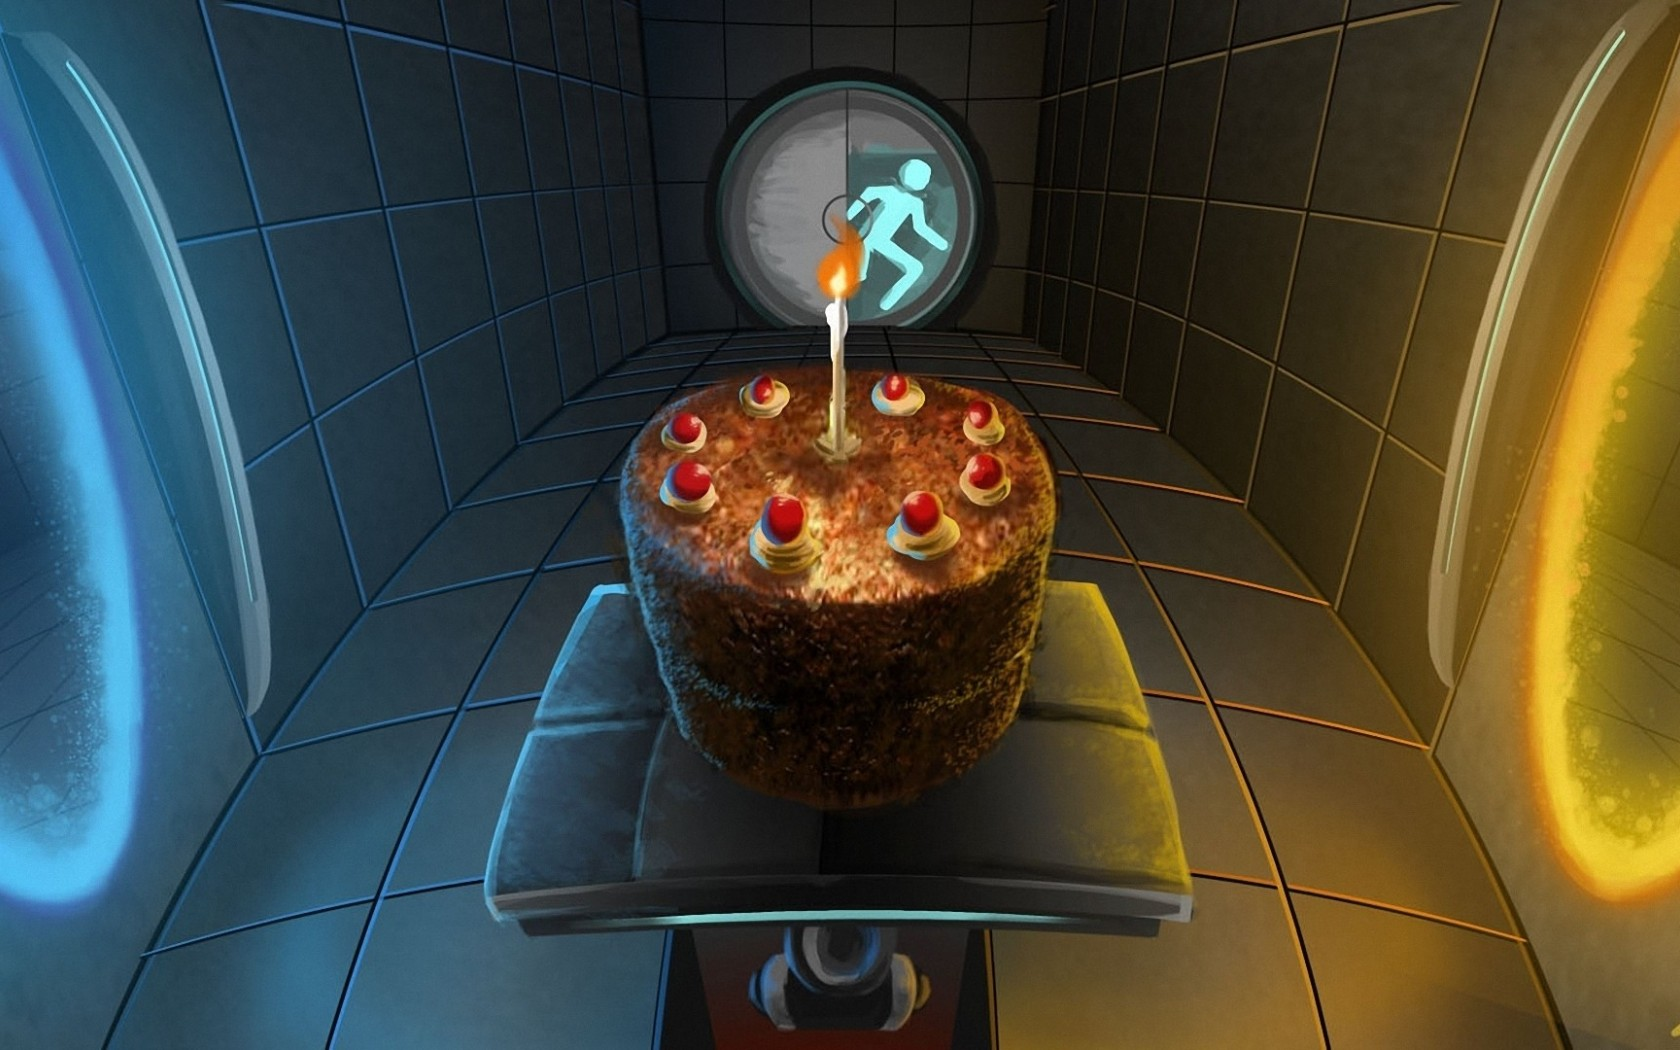 portal_video_cakes_game_1680x1050_28376